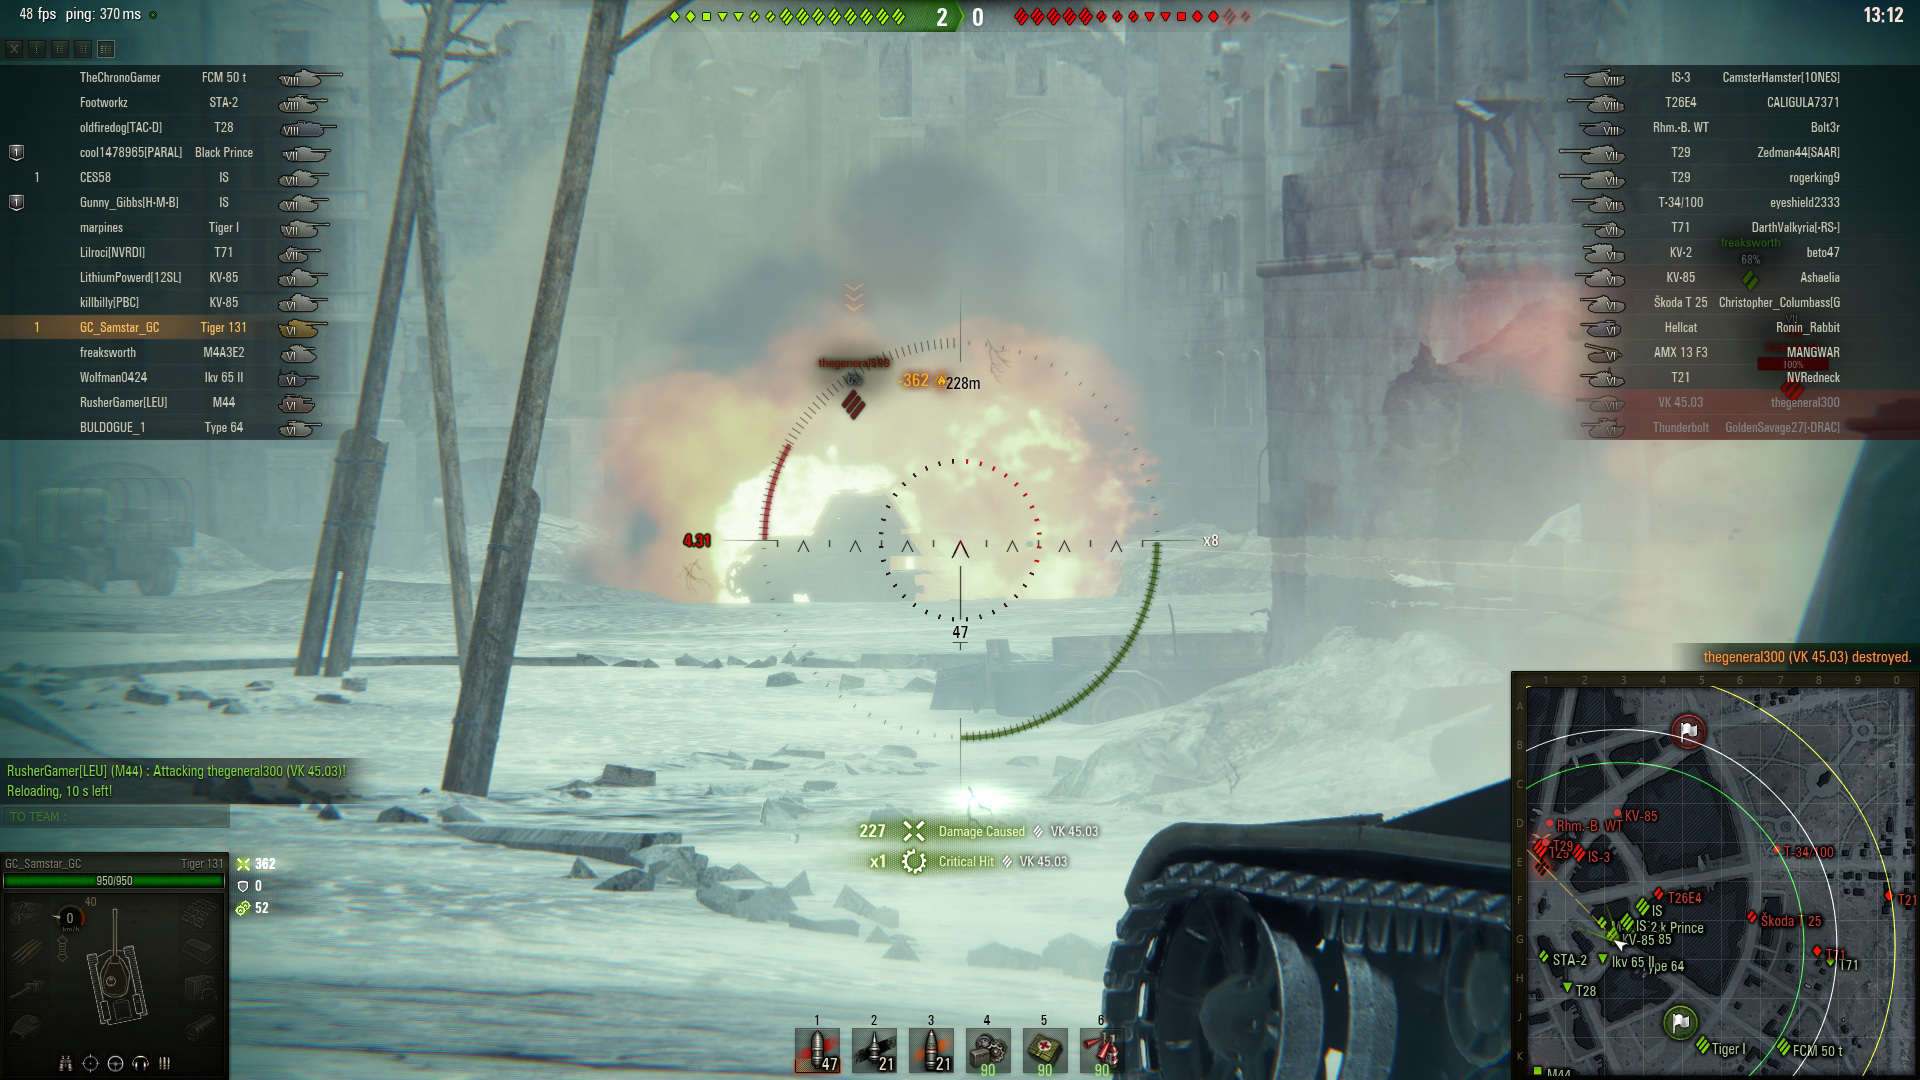 Though the penetration and alpha are only standard, the Tiger 131 is still able to dish out some punishment to at- and low-tier tanks.